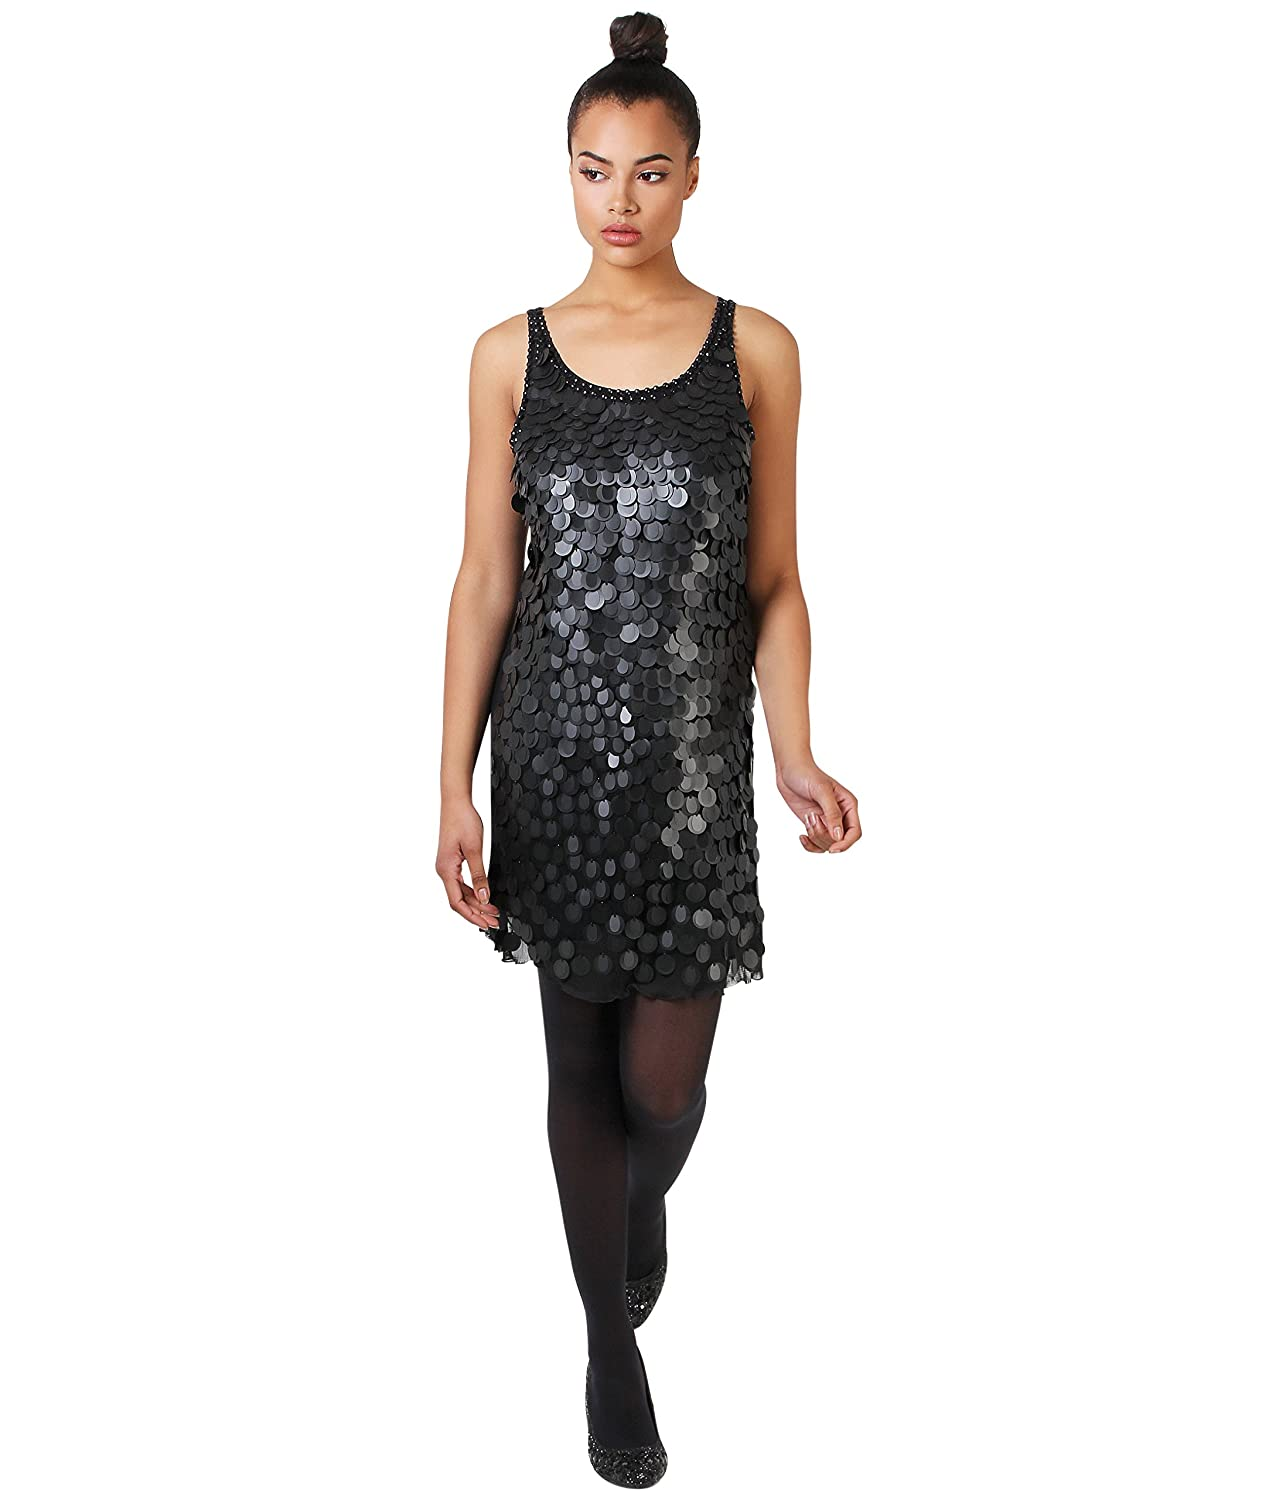 Amazon.com: KRISP Womens 1920s Vintage Glam Sequin Bodycon Flapper Mini Dress Ladies Cocktail Party: Clothing